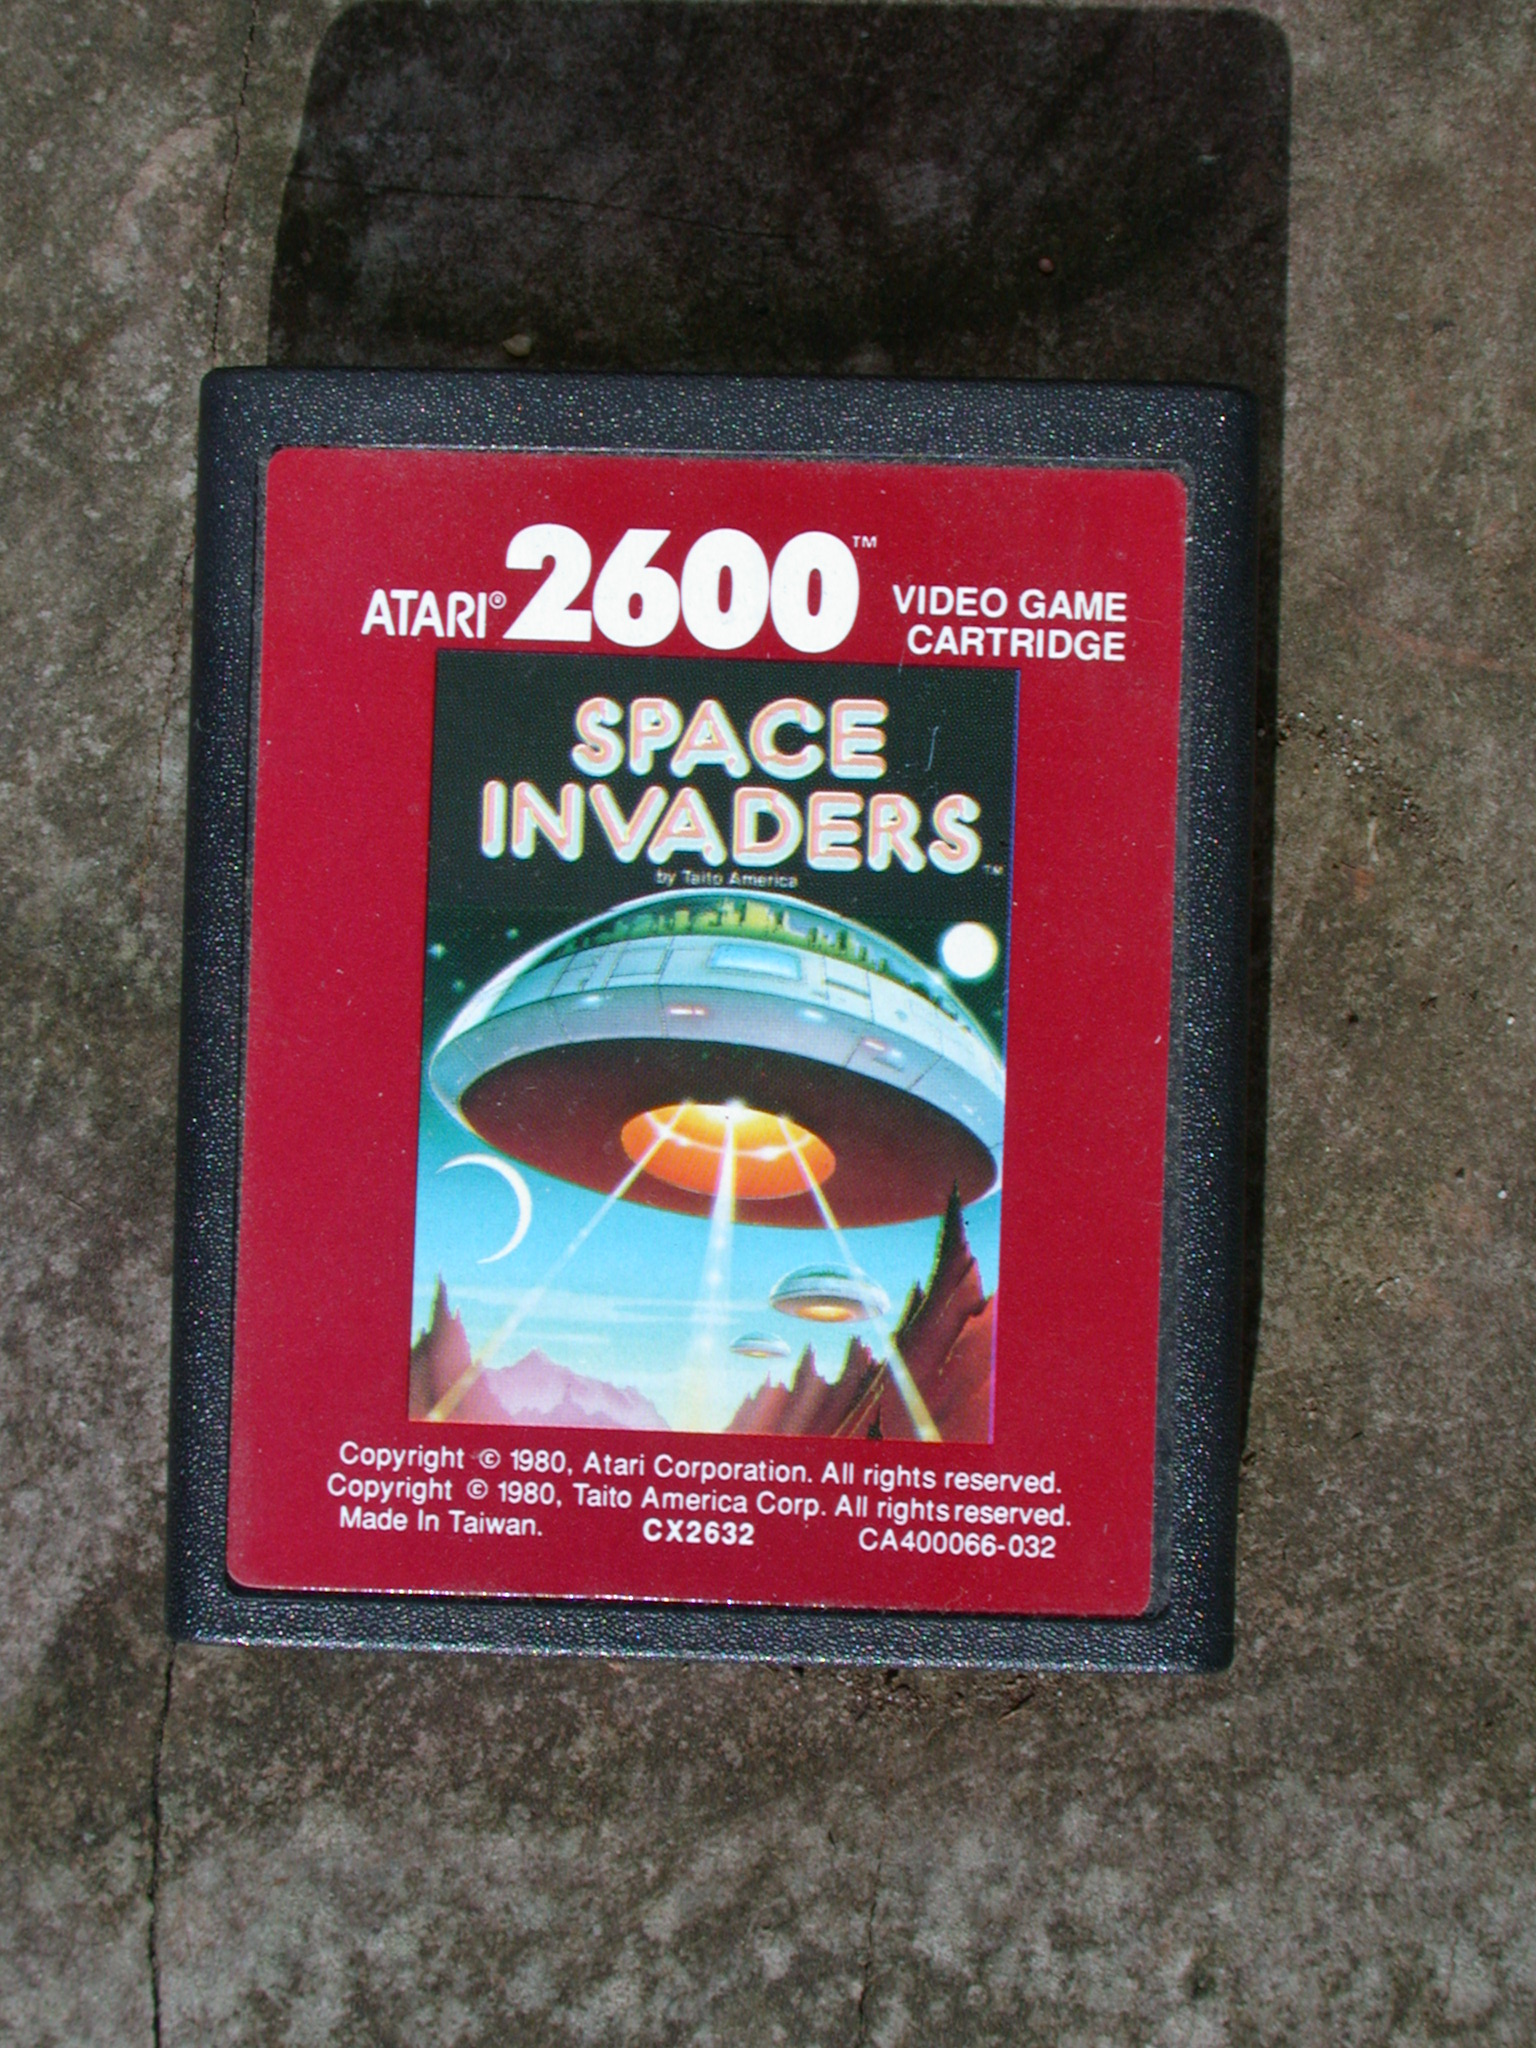 objects videogame computergame game games atari vintage spaceinvaders invaders space cartridge